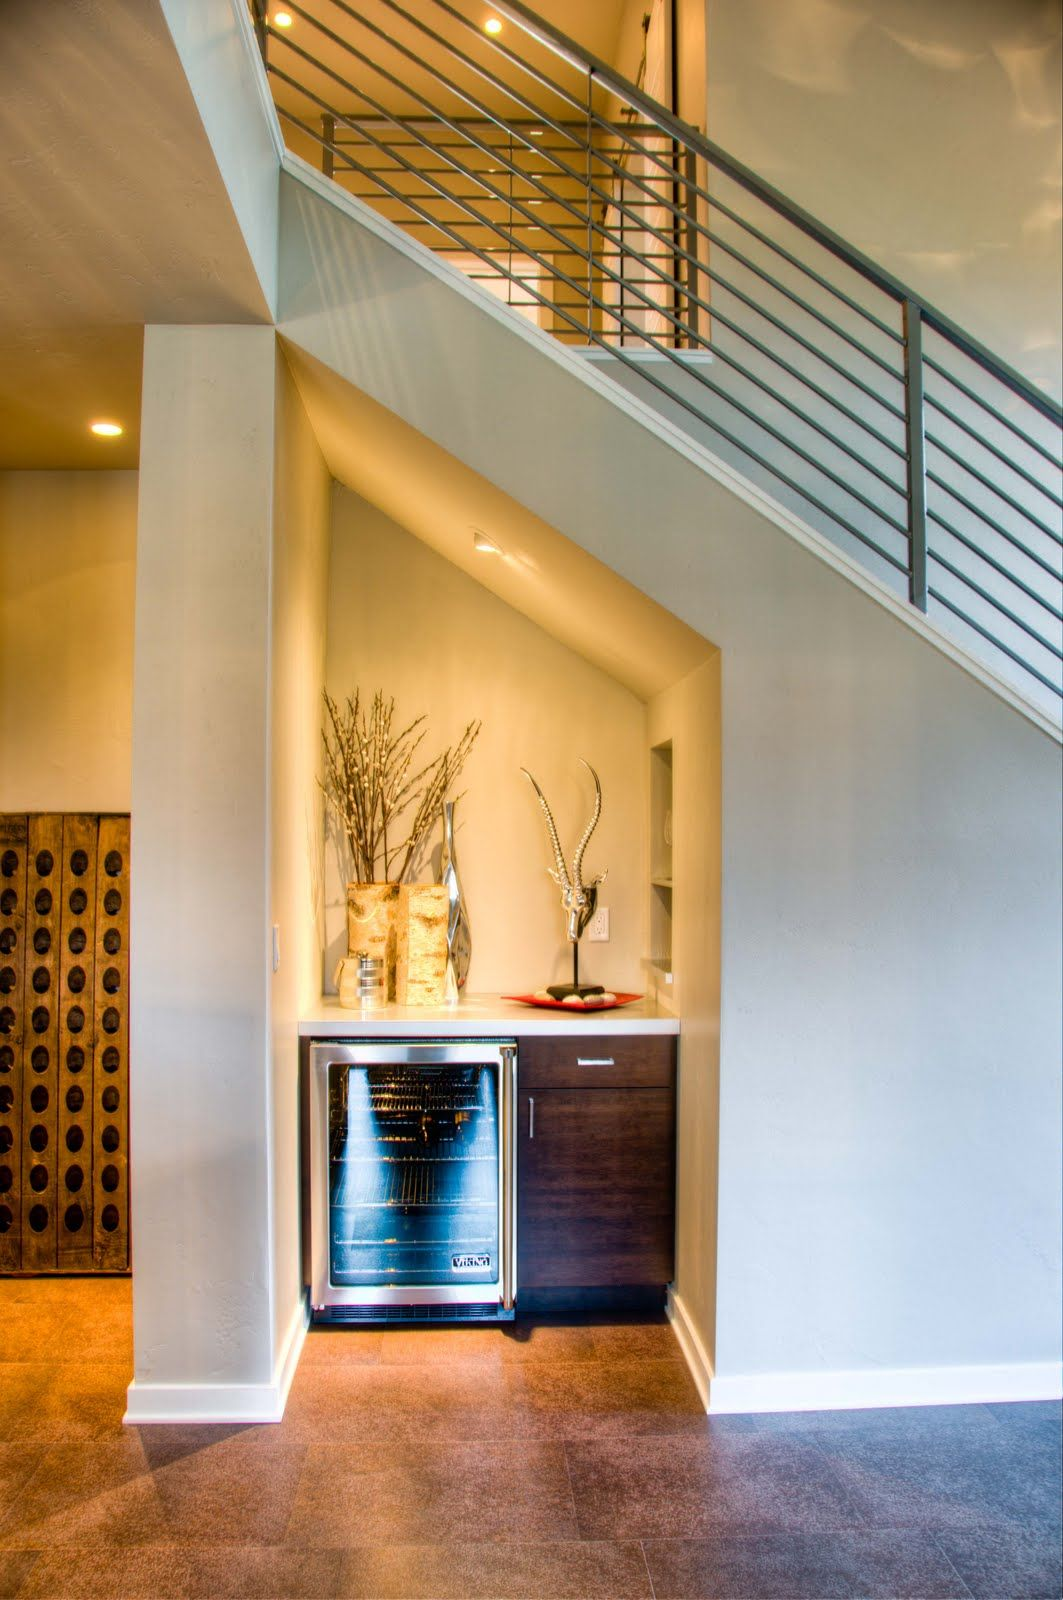 Great Use Of Space Under Stair Well This Mini Bar Has A Simple   Mini Bar Under Stairs Design   Stairs Cupboard   Escaleras   Interior Design   Basement Stairs   Stair Storage